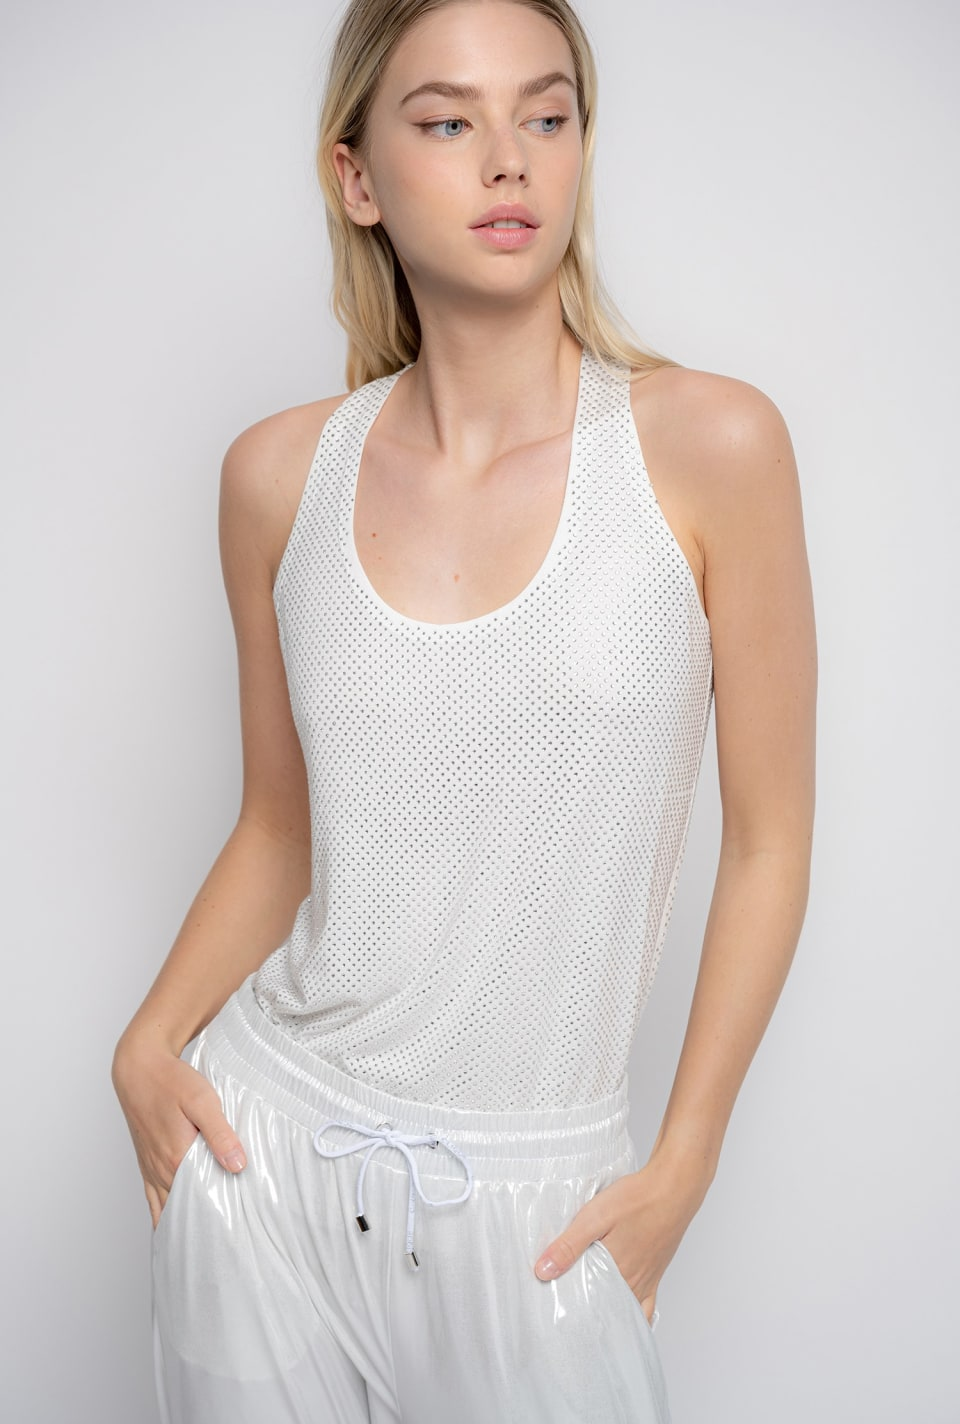 Full-rhinestone tank top - Pinko